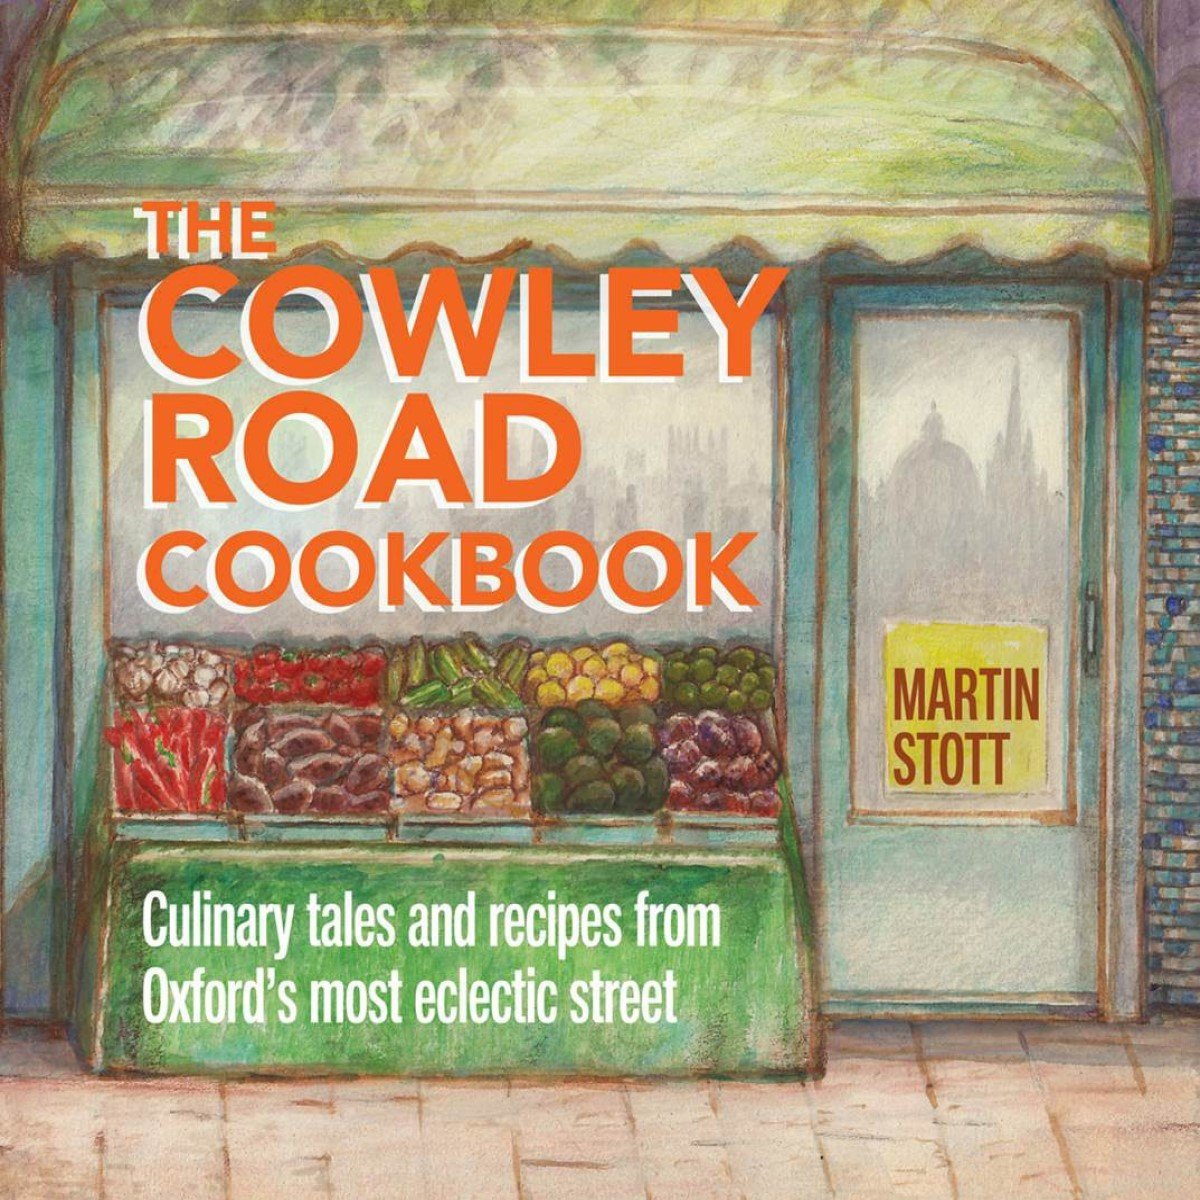 The Cowley Road Cookbook